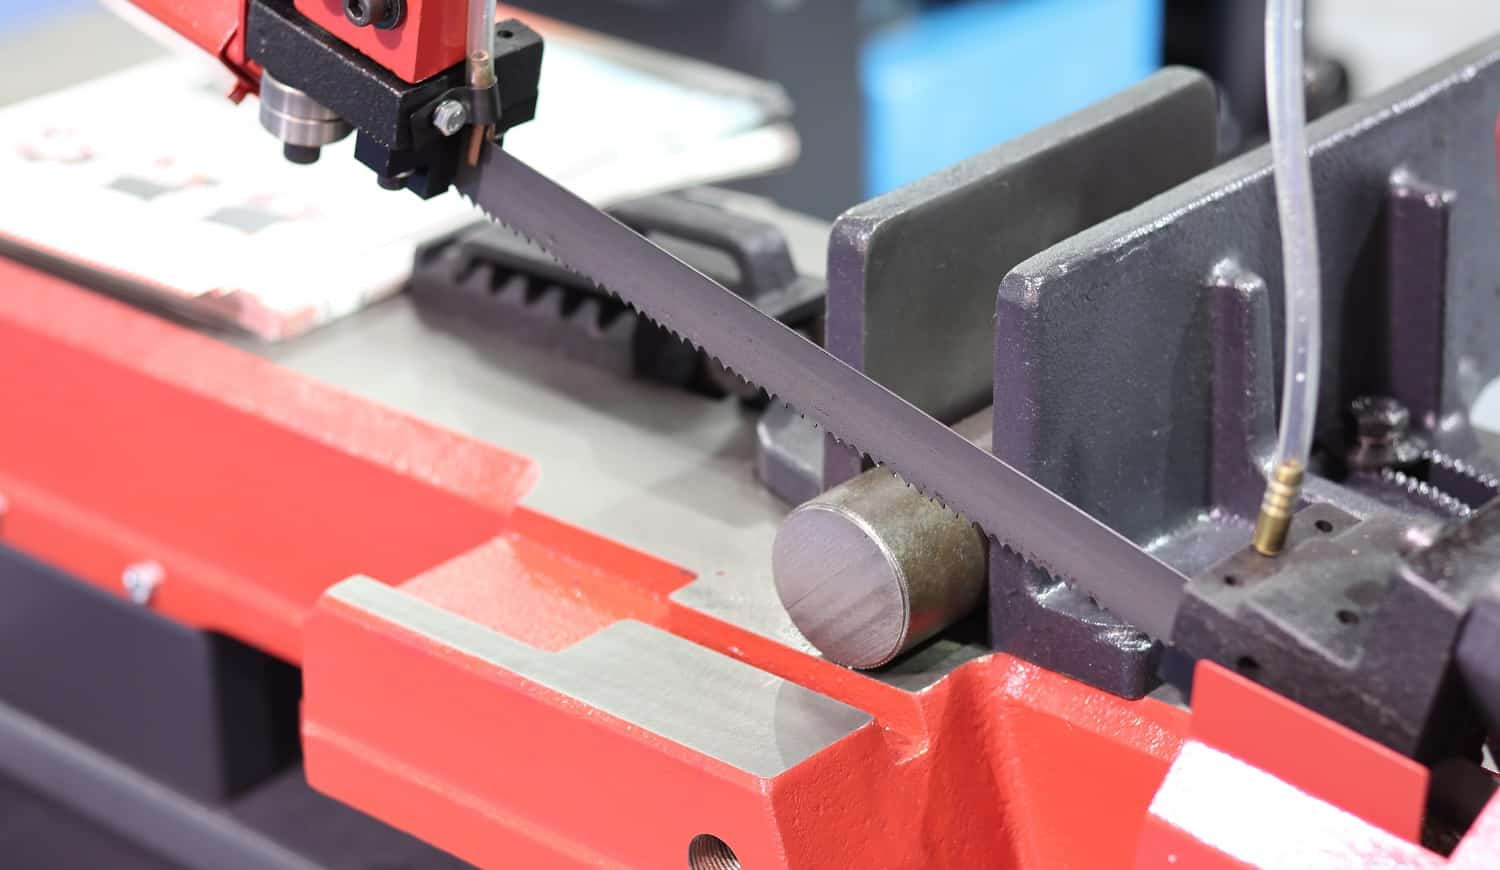 Steel bar cutting by band saw machine with coolant